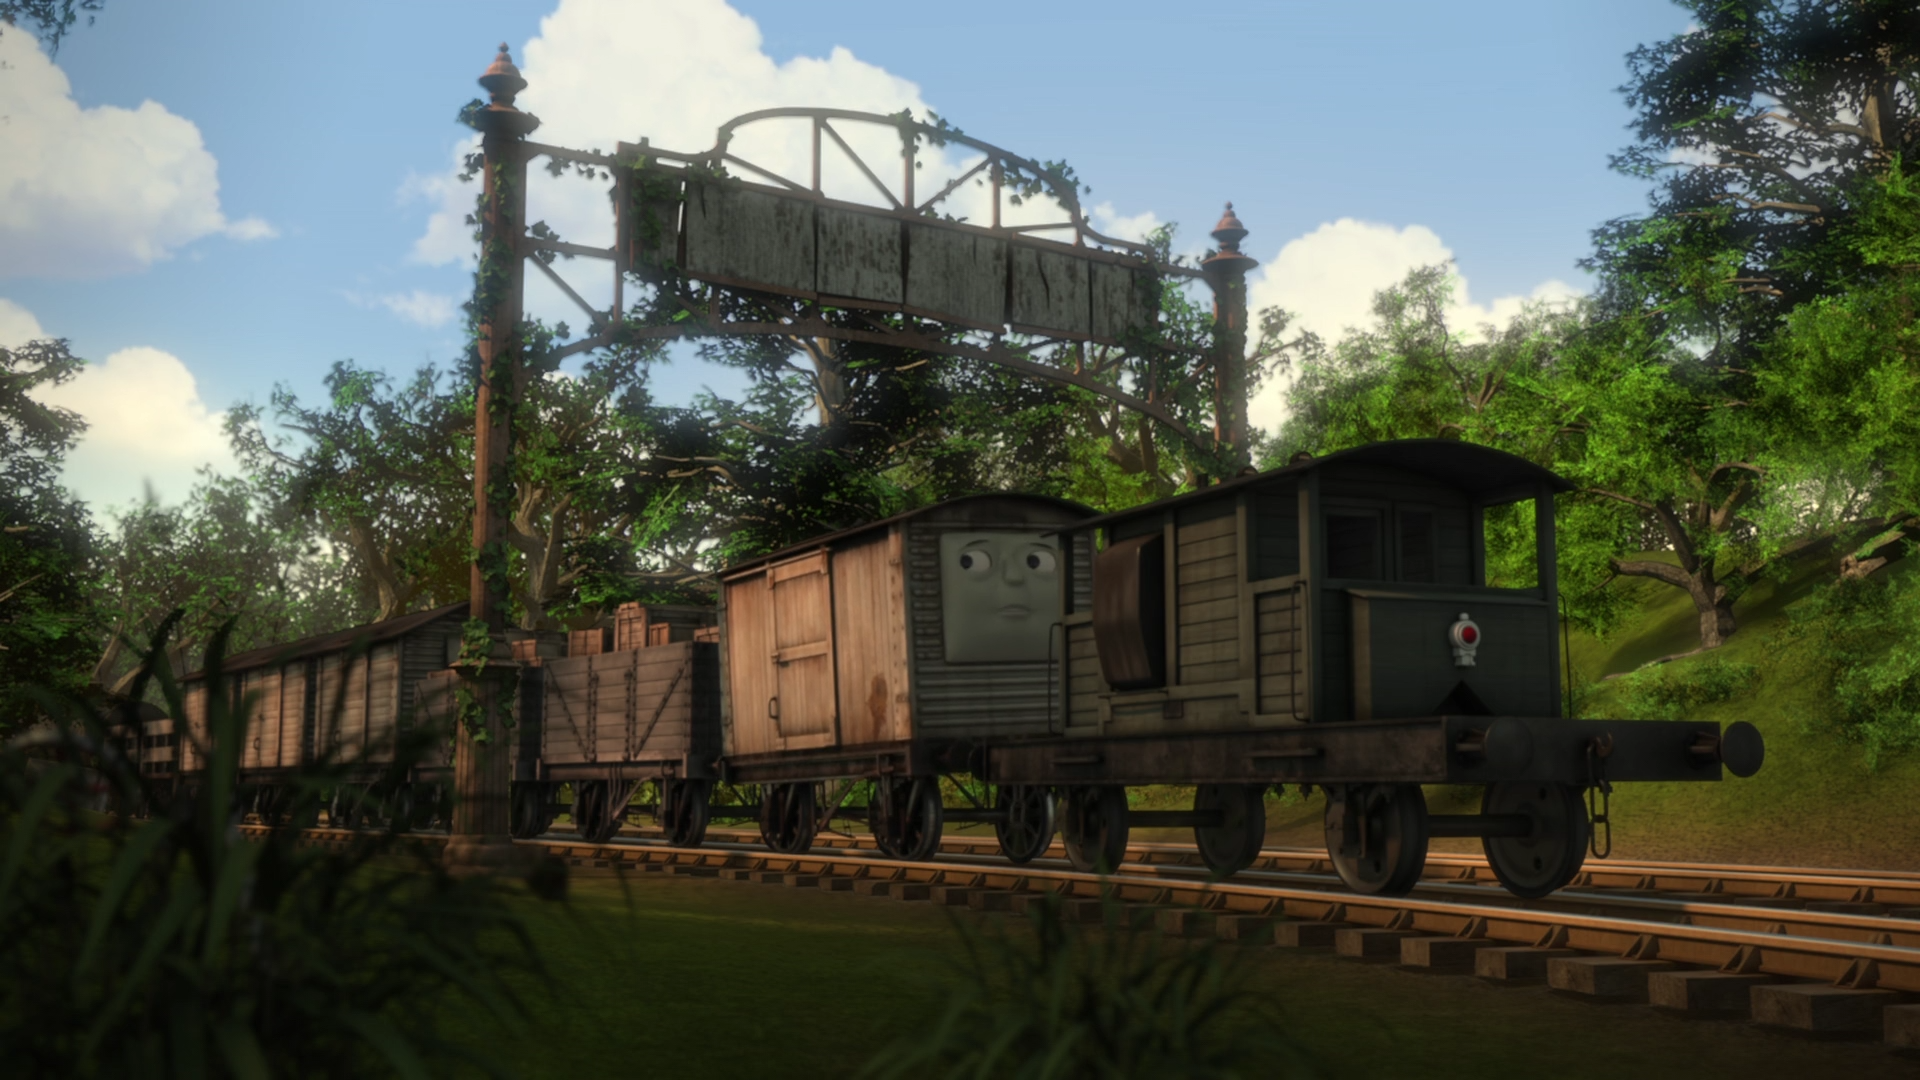 The Experimental Engines Yard